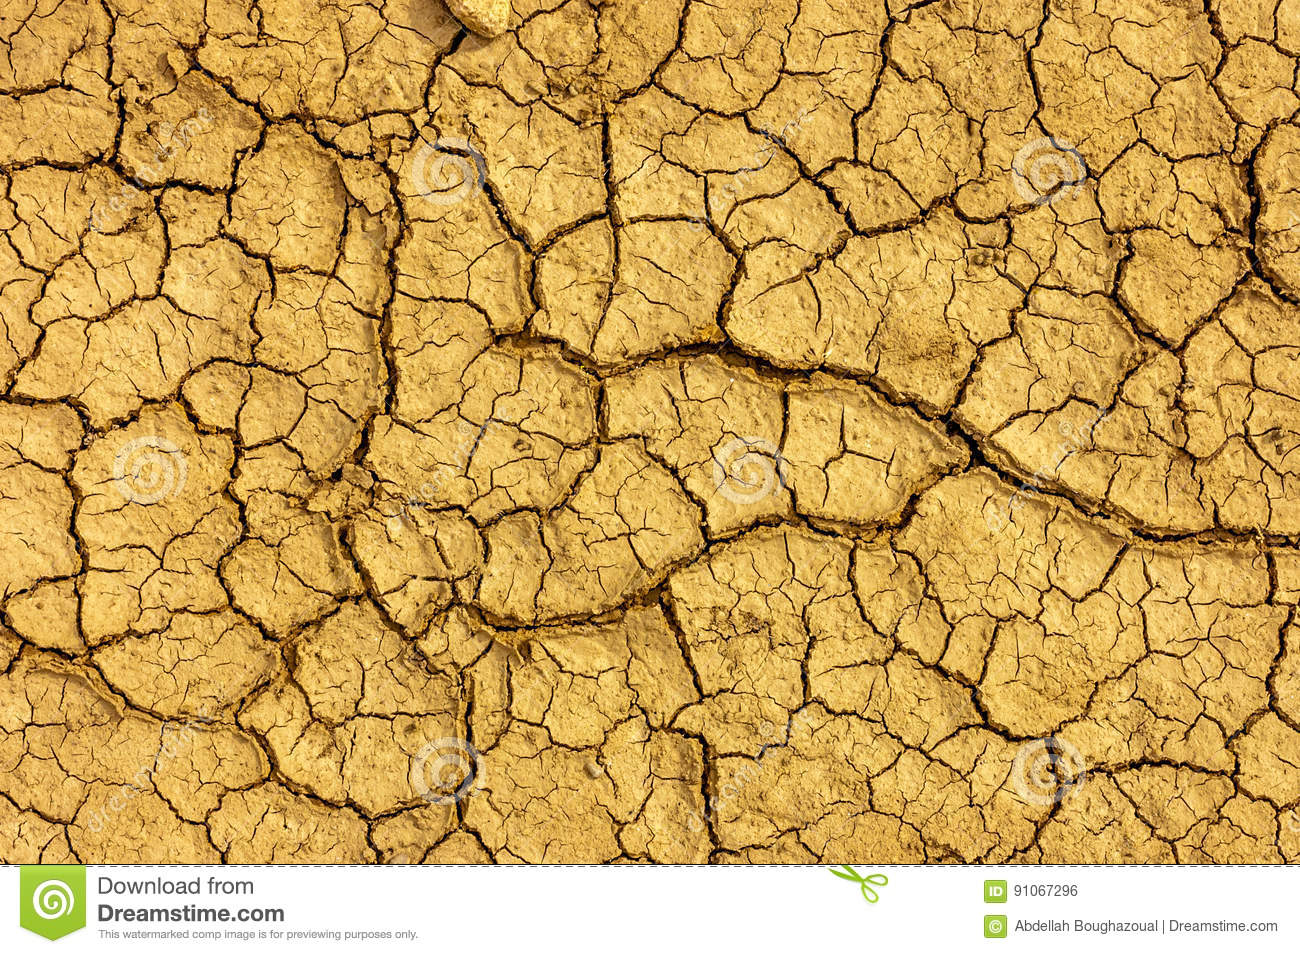 Dry yellow cracked earth texture.